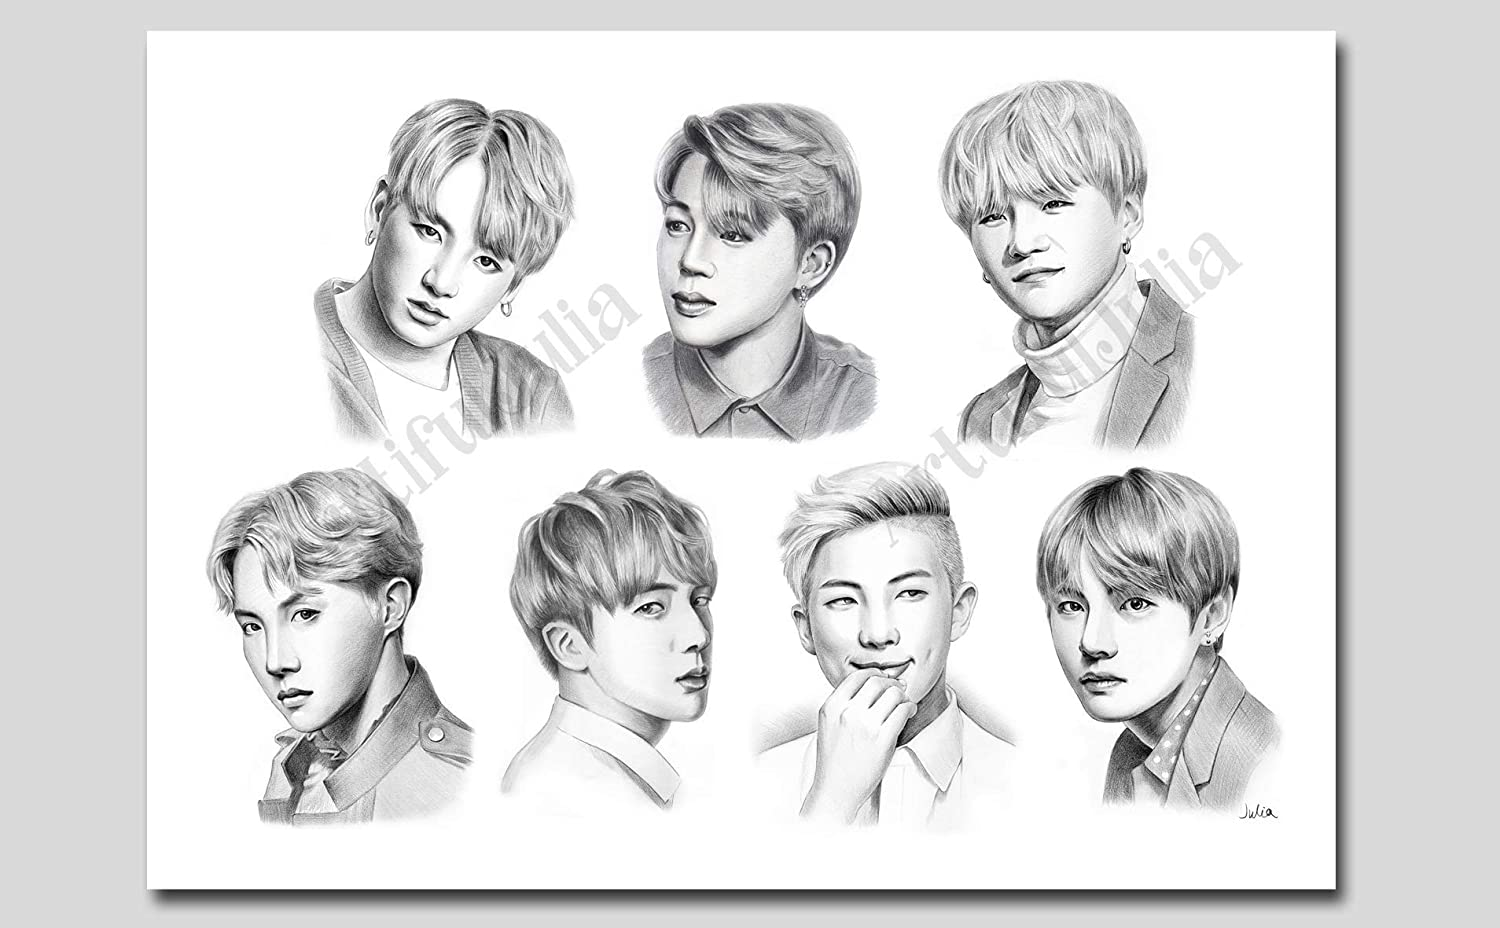 Amazon Com Bts Poster Pencil Drawing Art Print Of Watercolor Painting No Frame No Canvas 5 X 7 8 X 10 9 X 12 11 X 14 And 12 X 16 Handmade